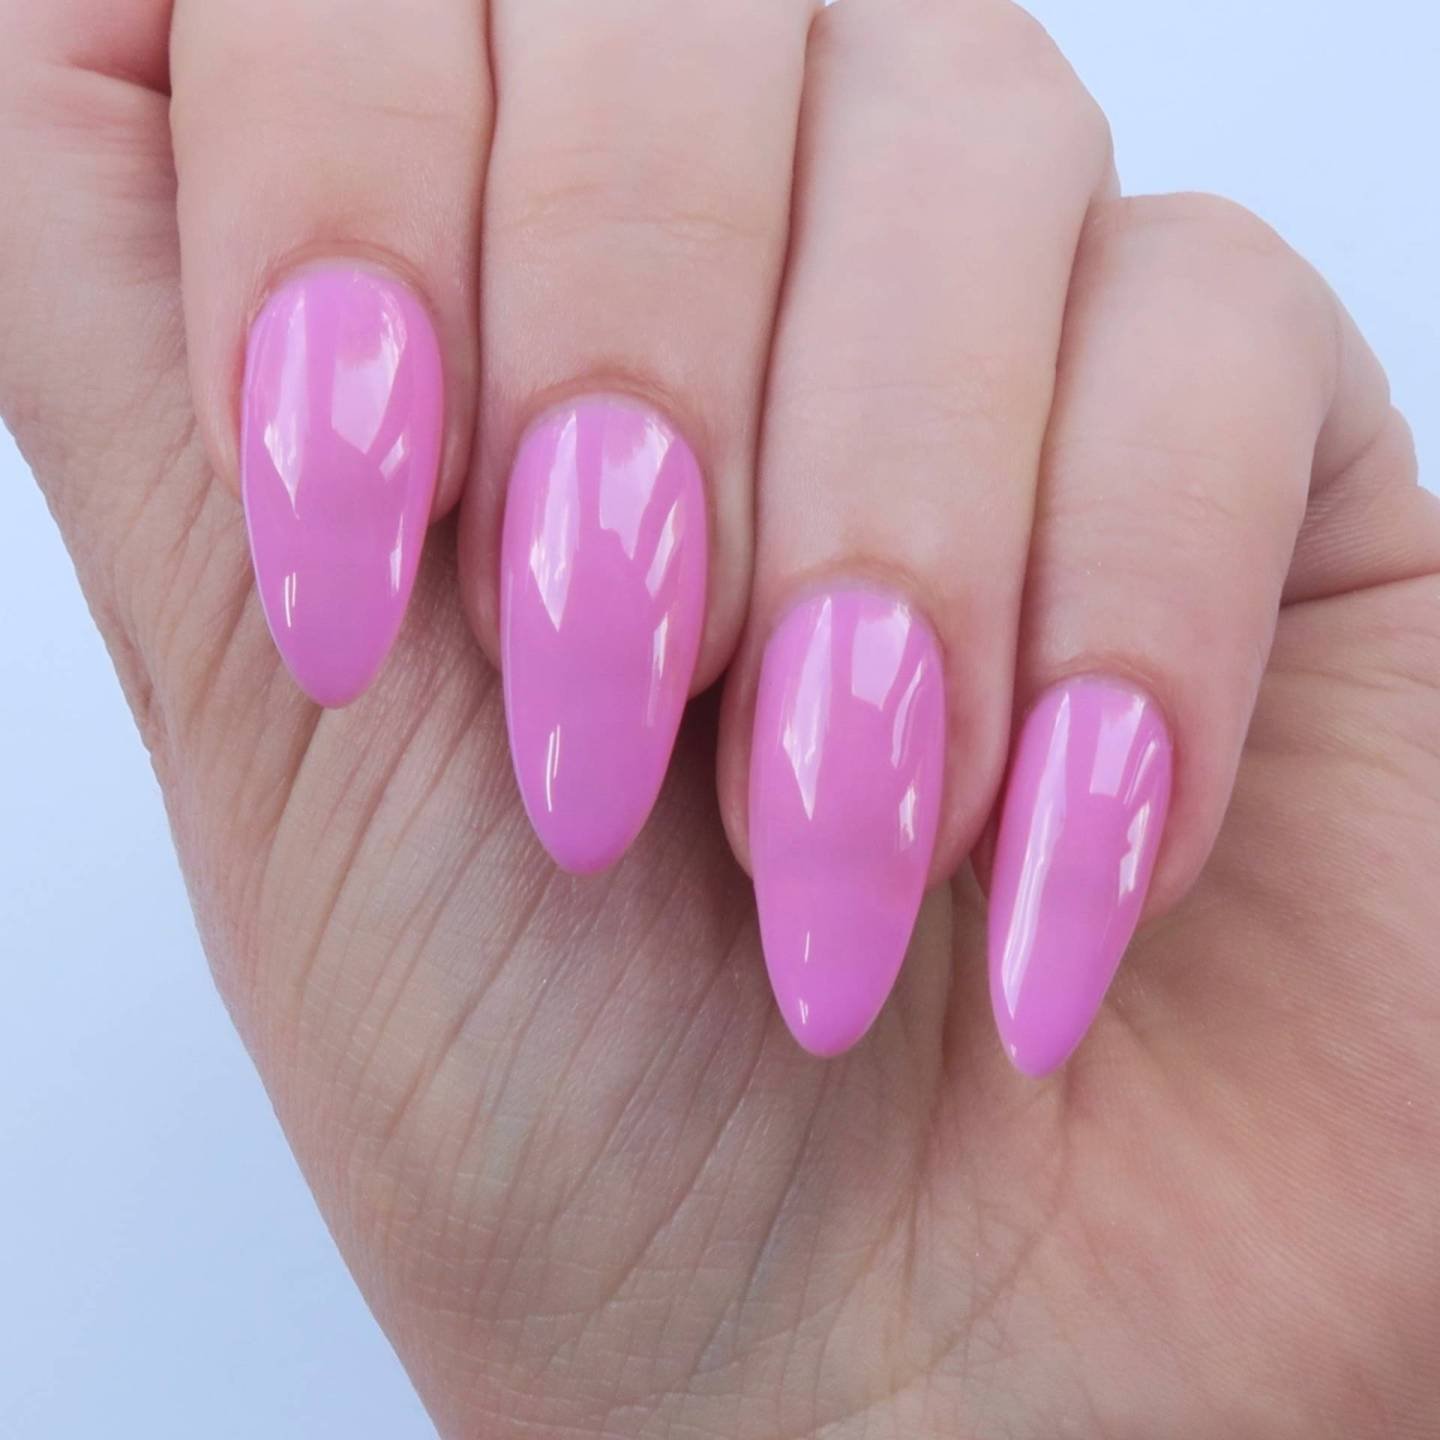 Madam-Glam-One-Step-Gels-Girly-Pink-2